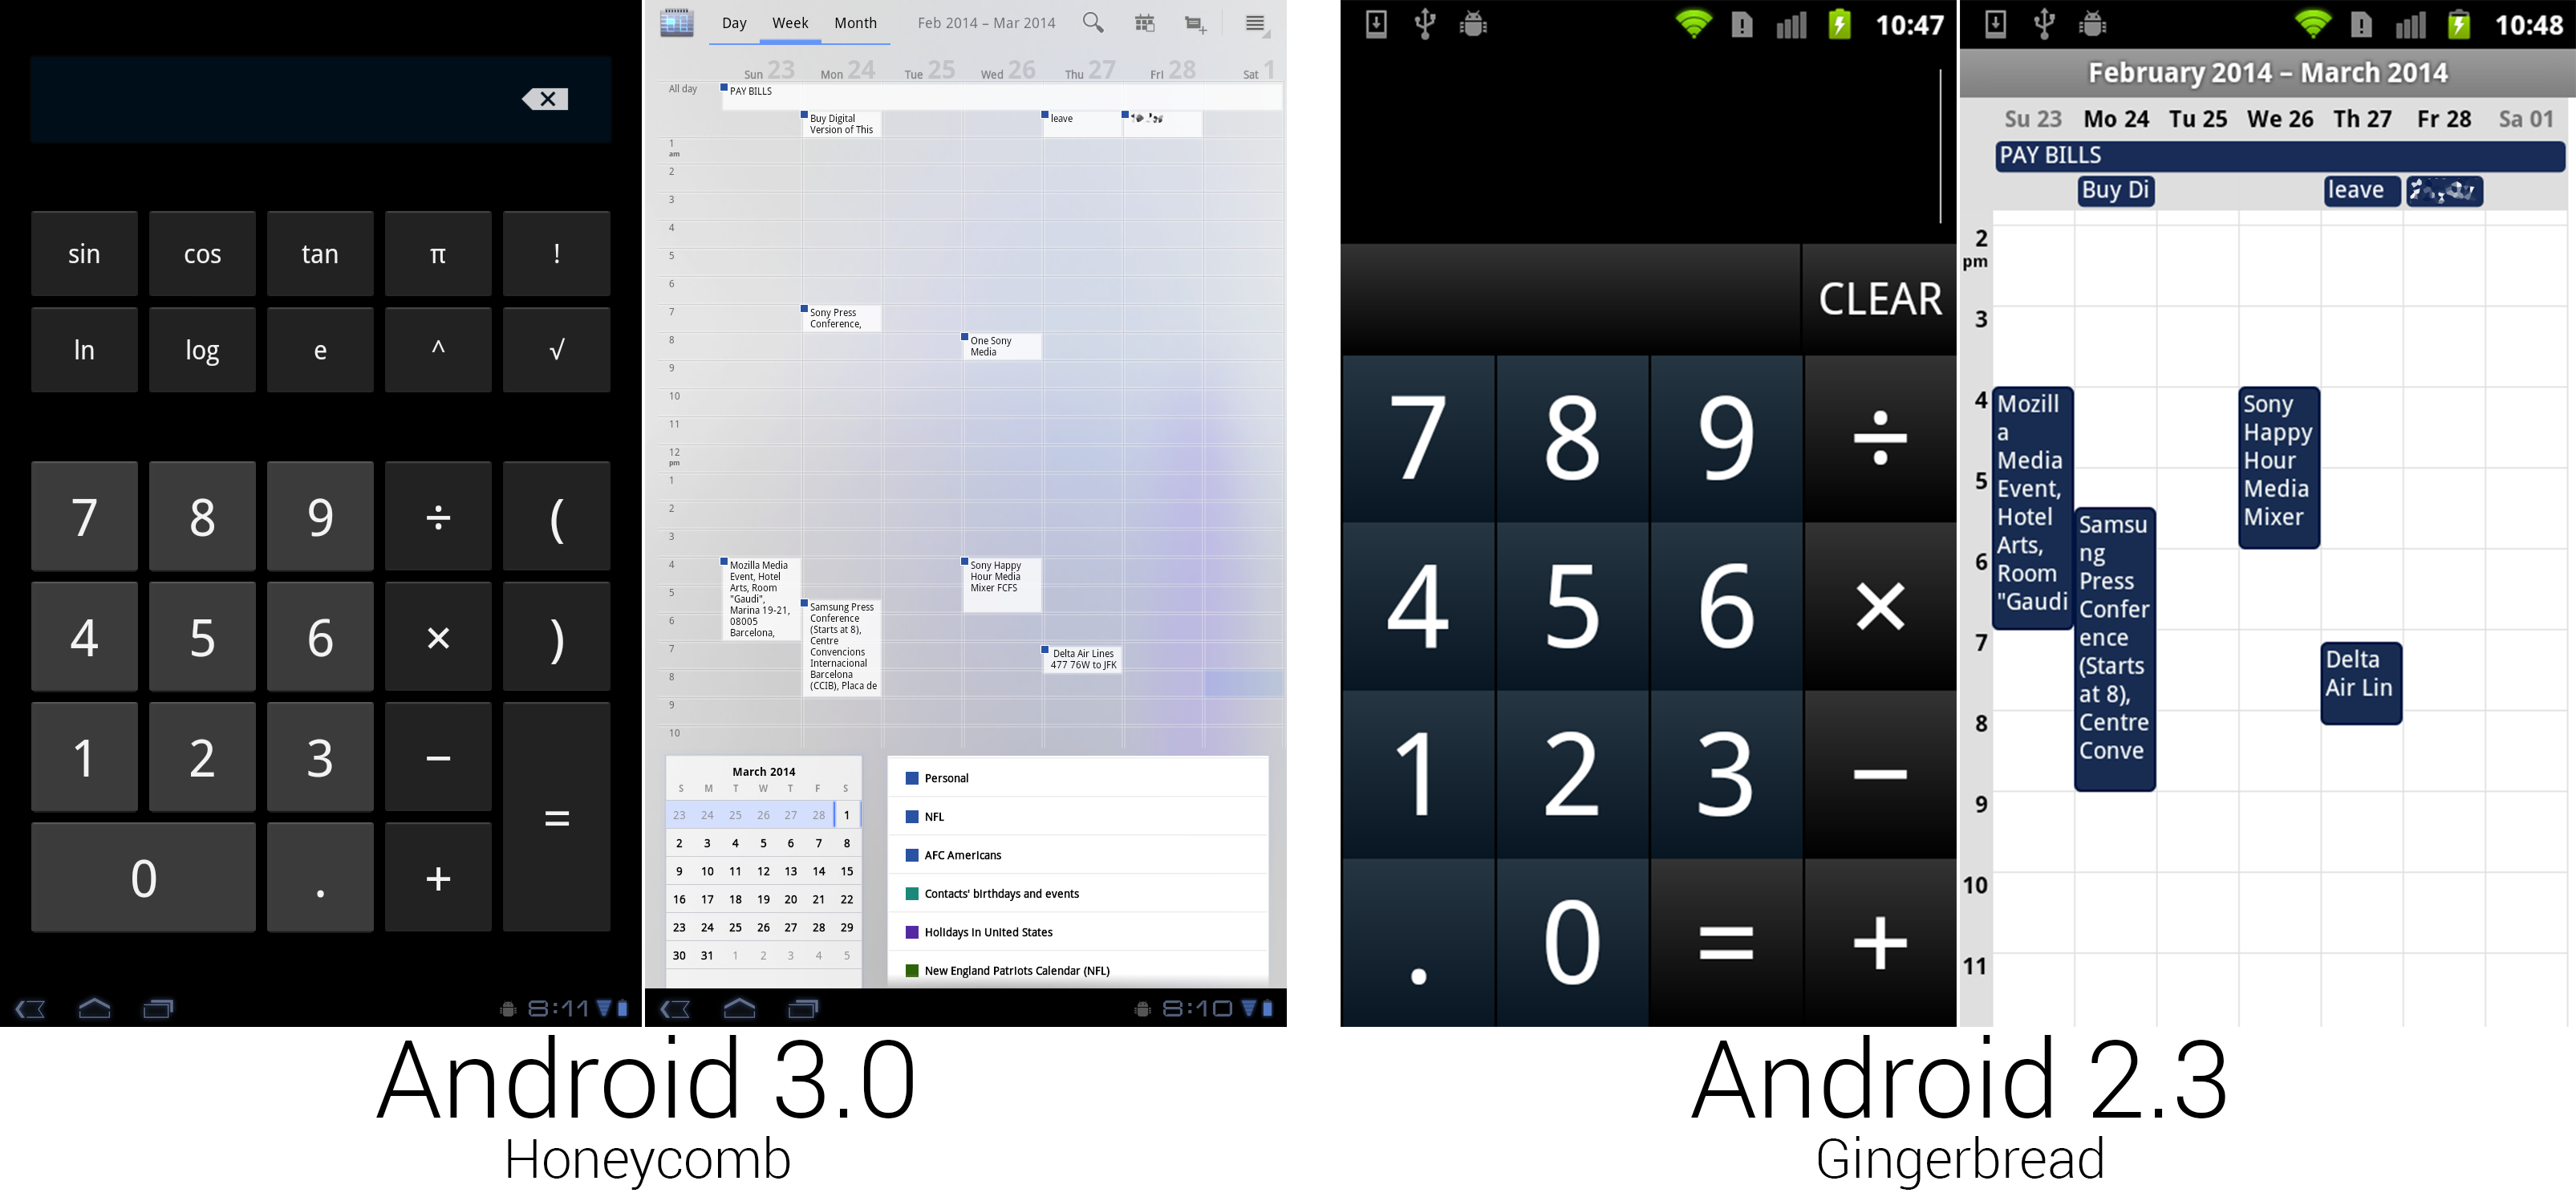 The calculator finally used regular Android buttons, but someone spilled blue ink on the calendar.